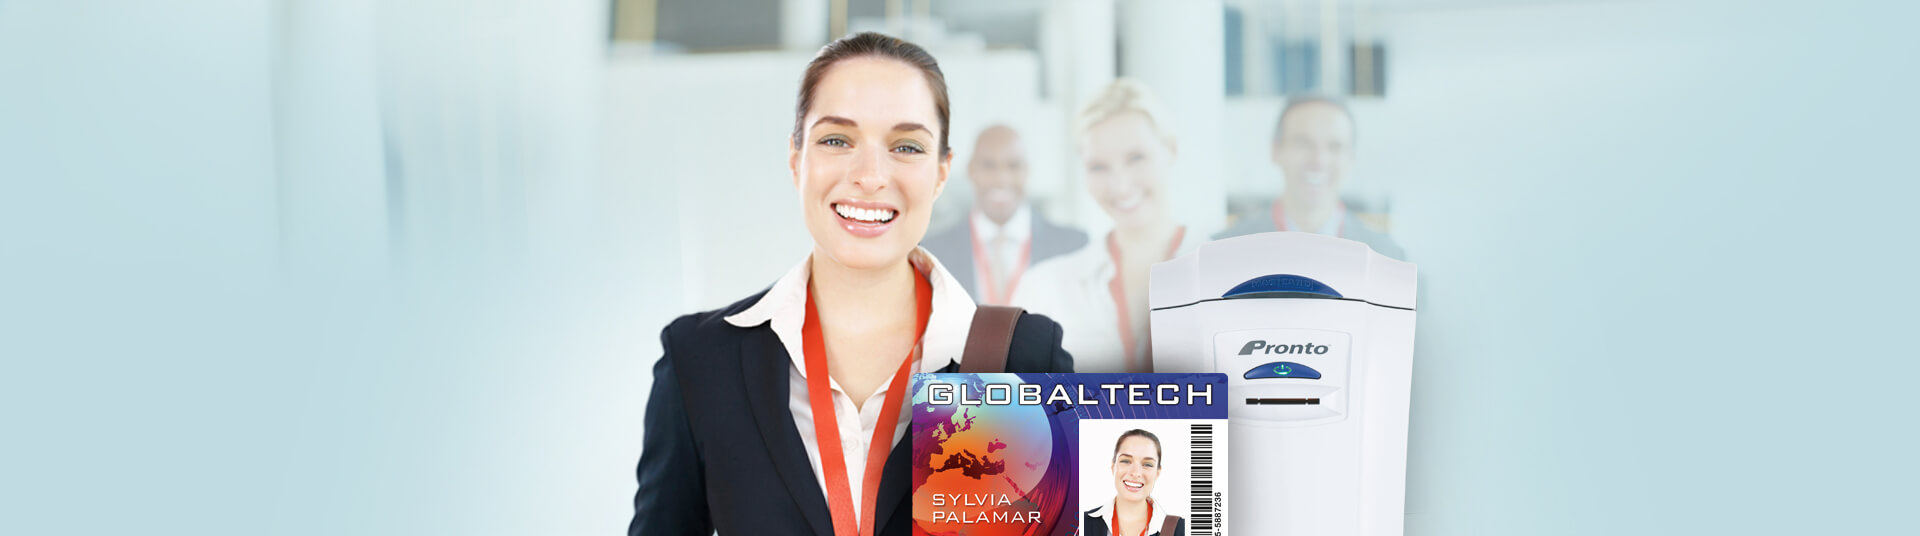 Employee Identification Systems